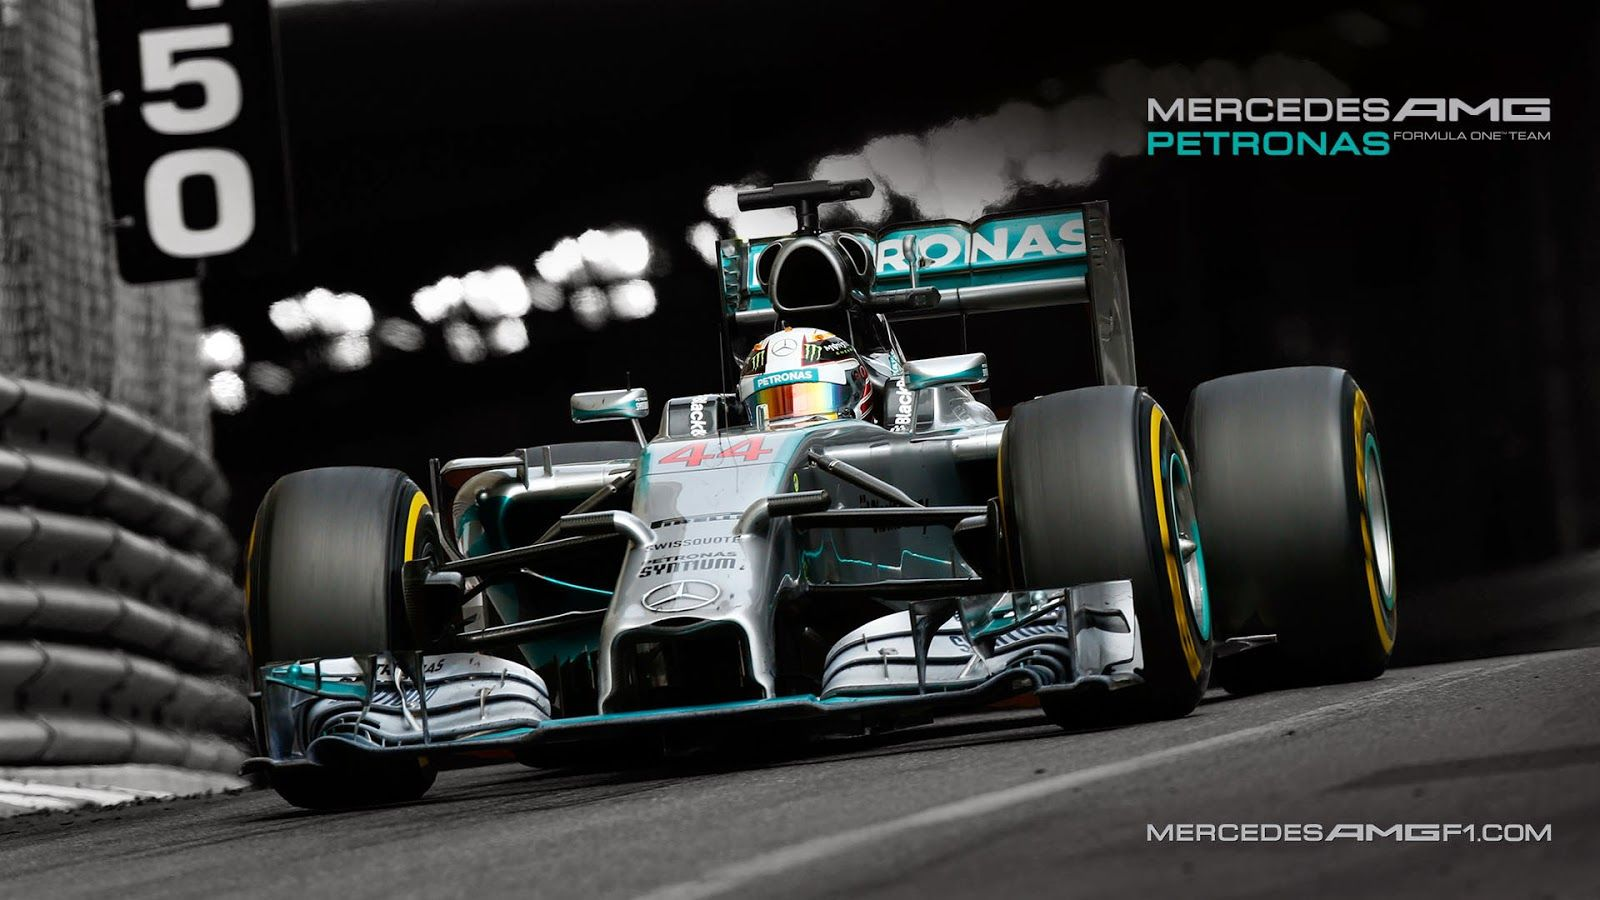 F1 mercedes wallpaper hd resolution klh